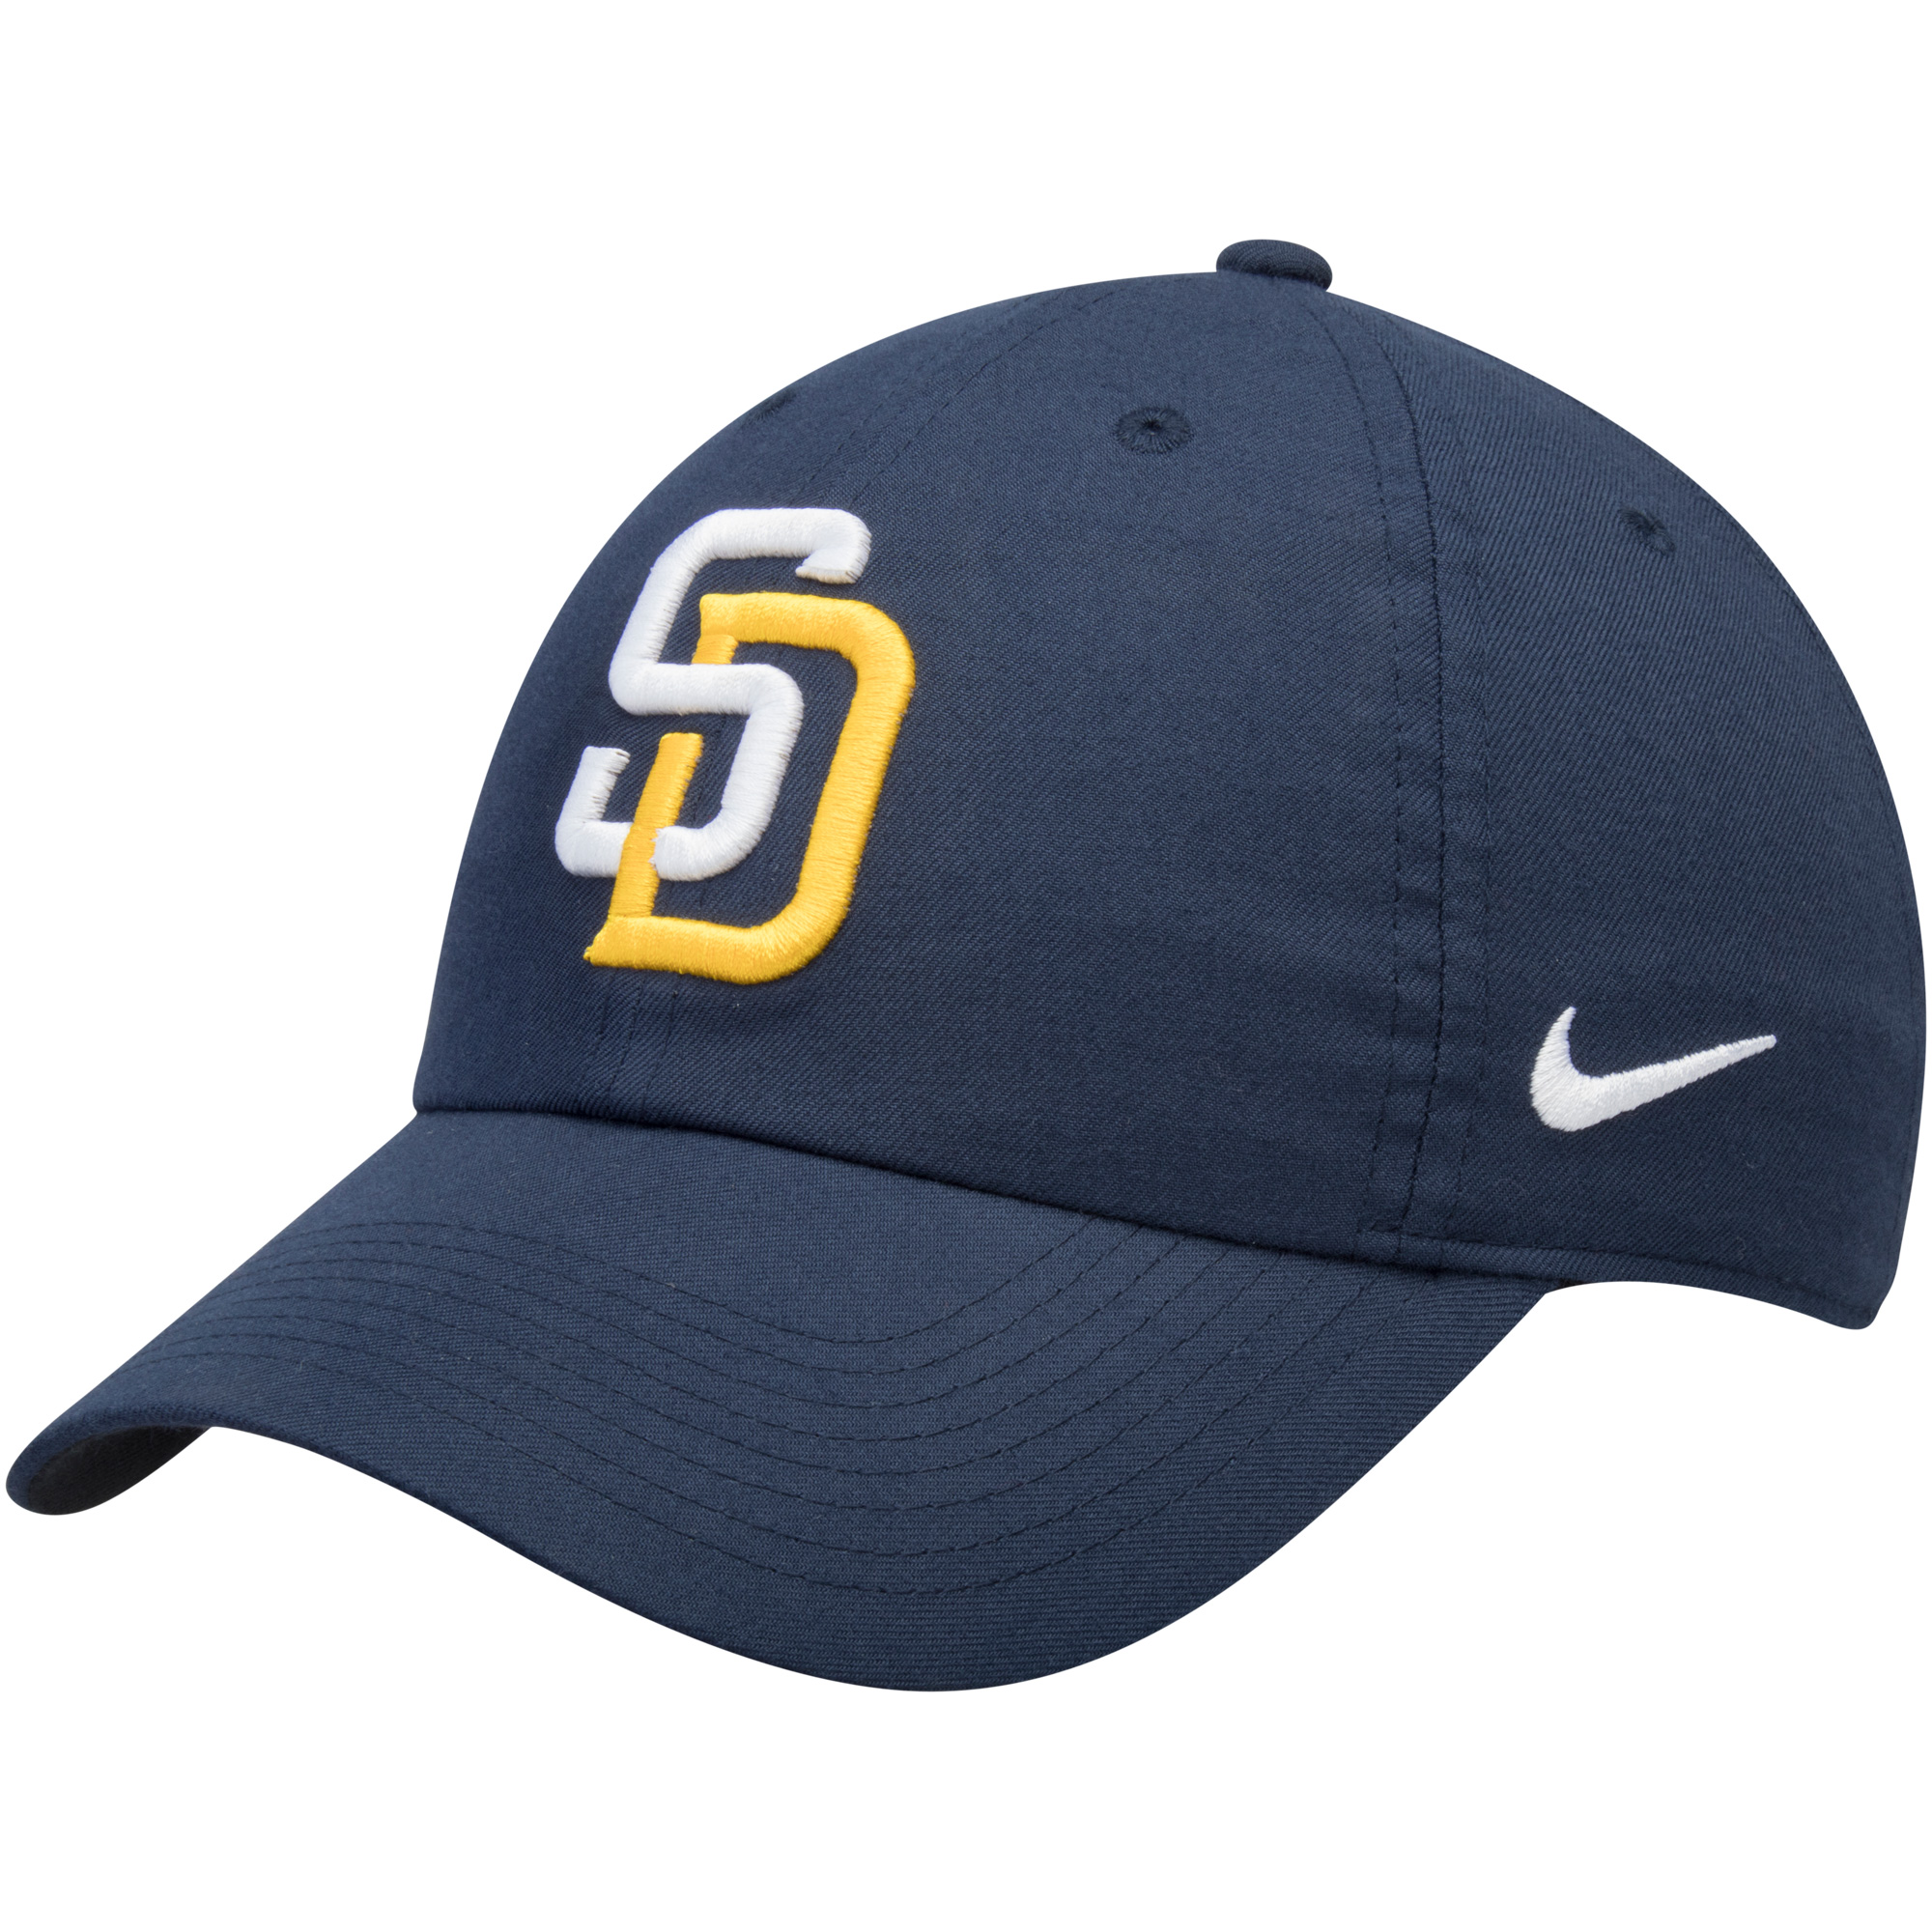 San Diego Padres Nike Heritage 86 Stadium Performance Adjustable Hat - Navy - OSFA